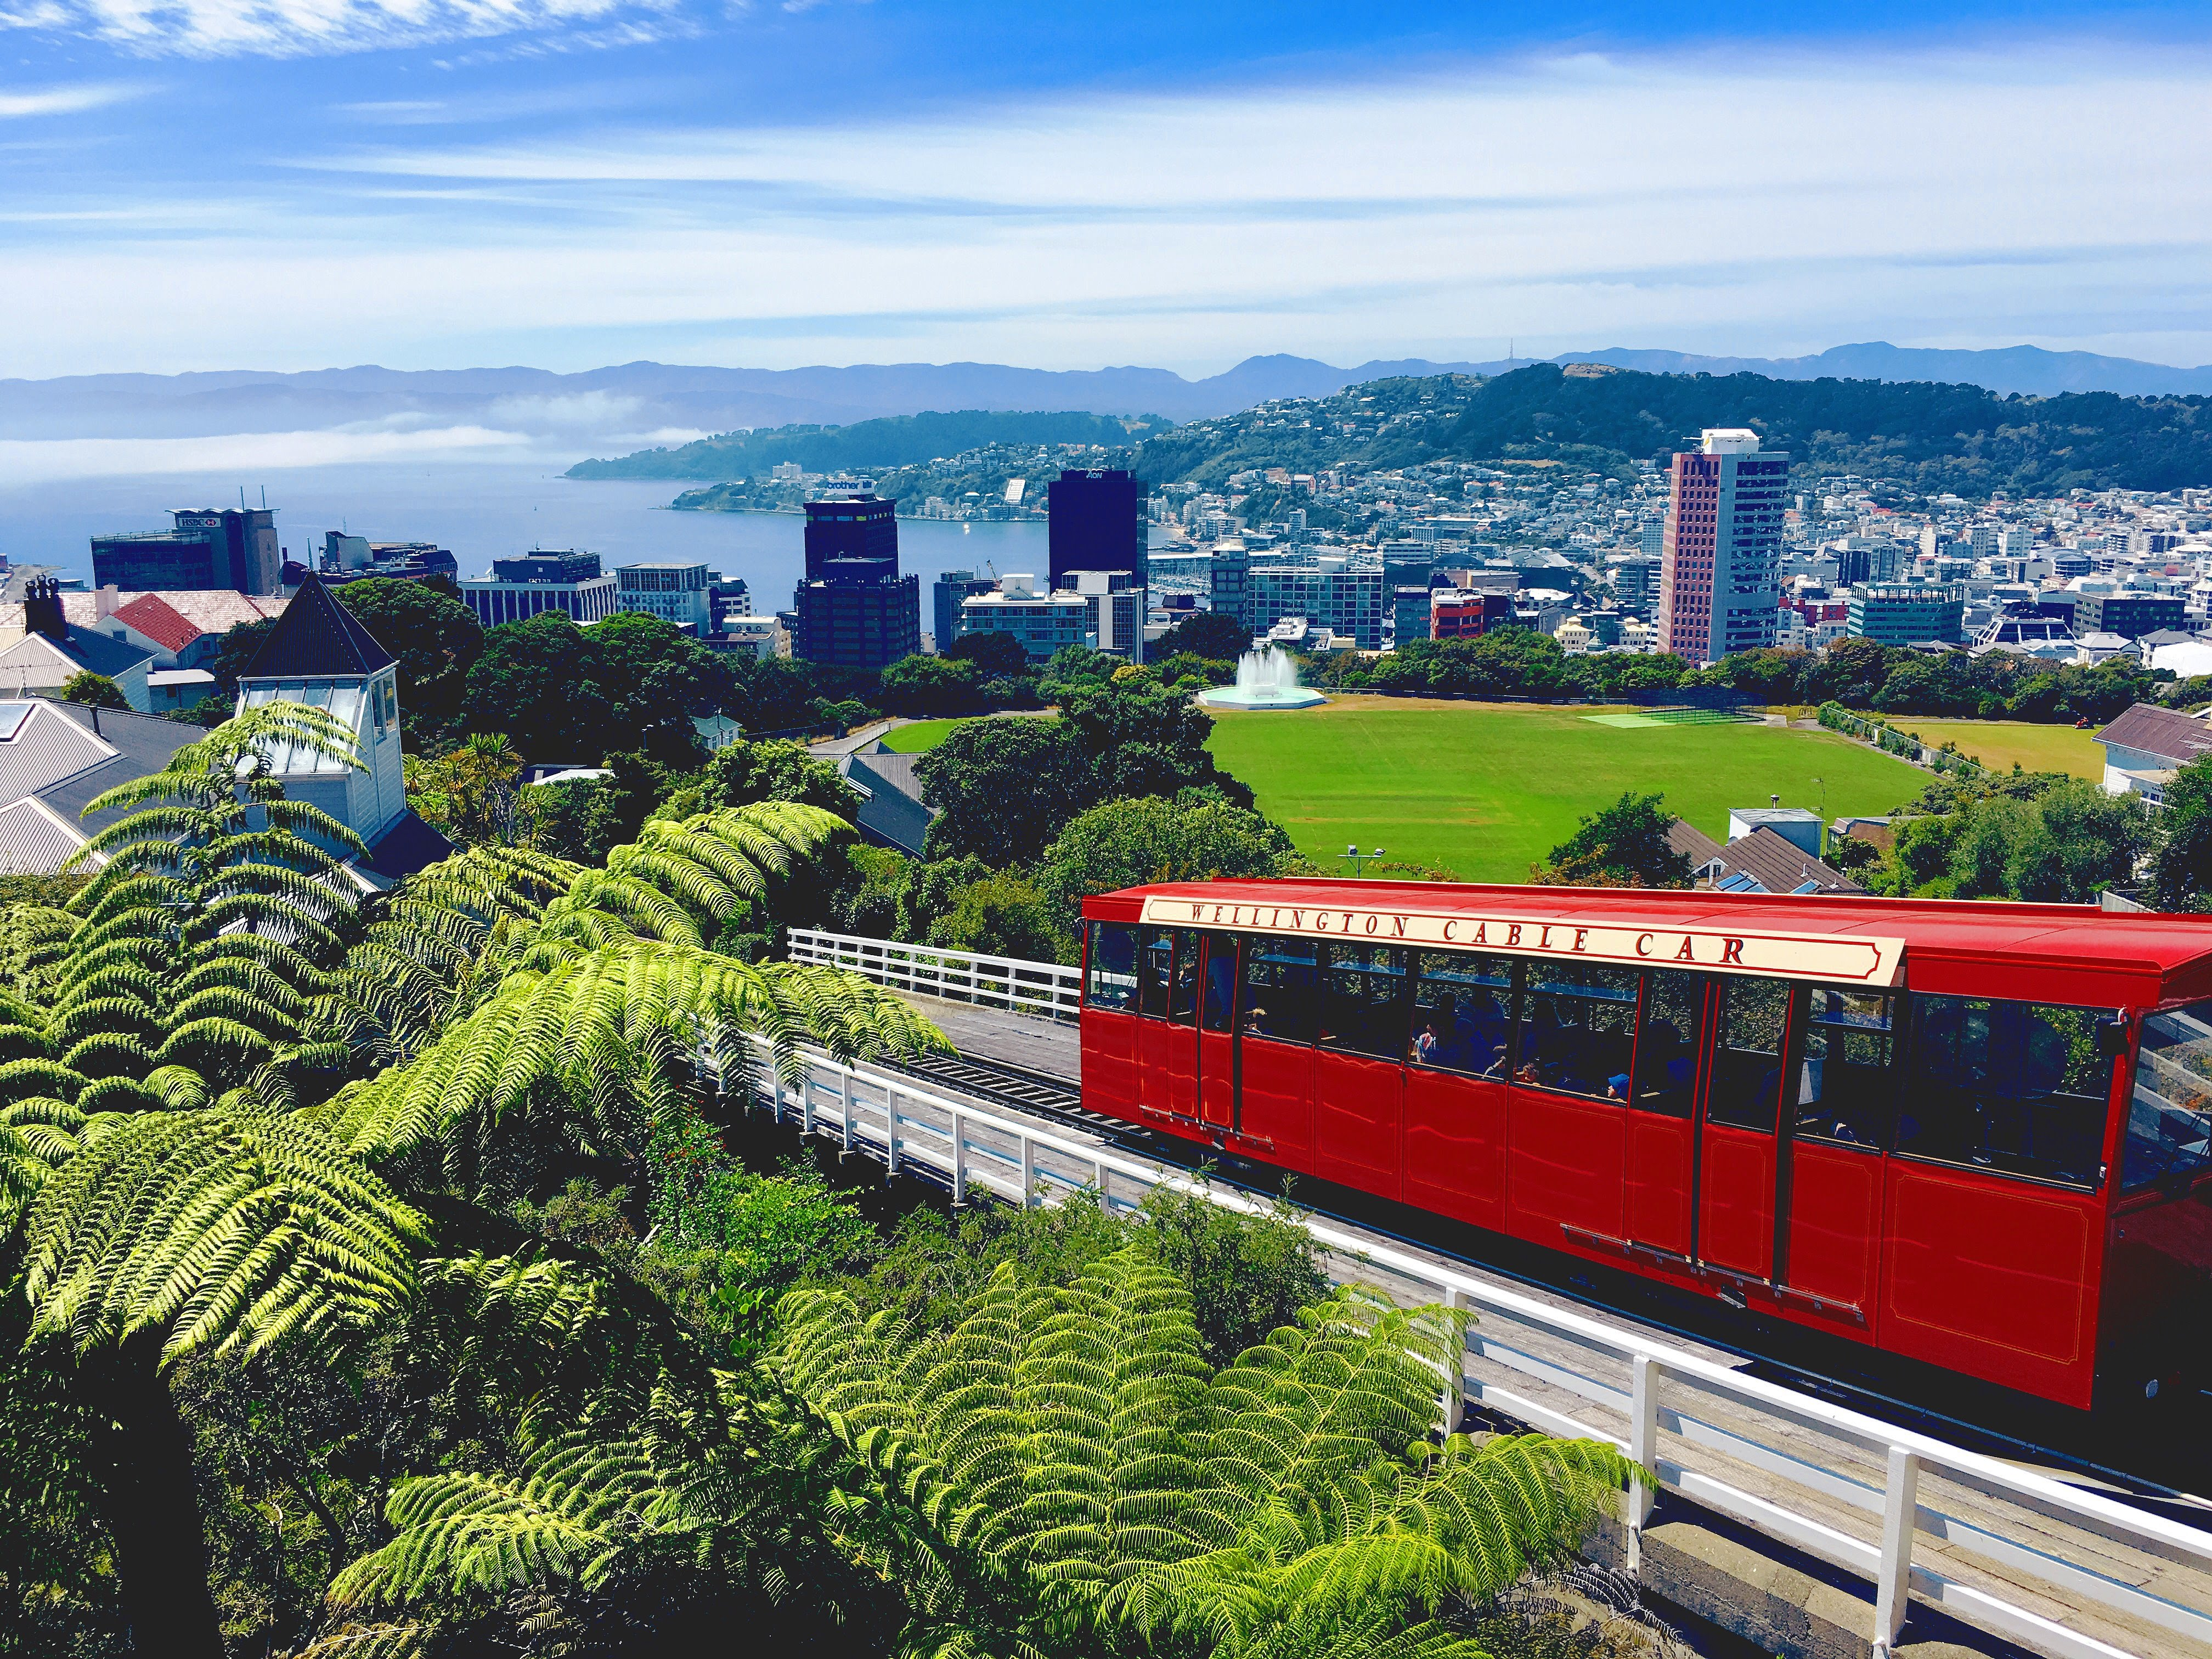 Riding the funicular in Wellington